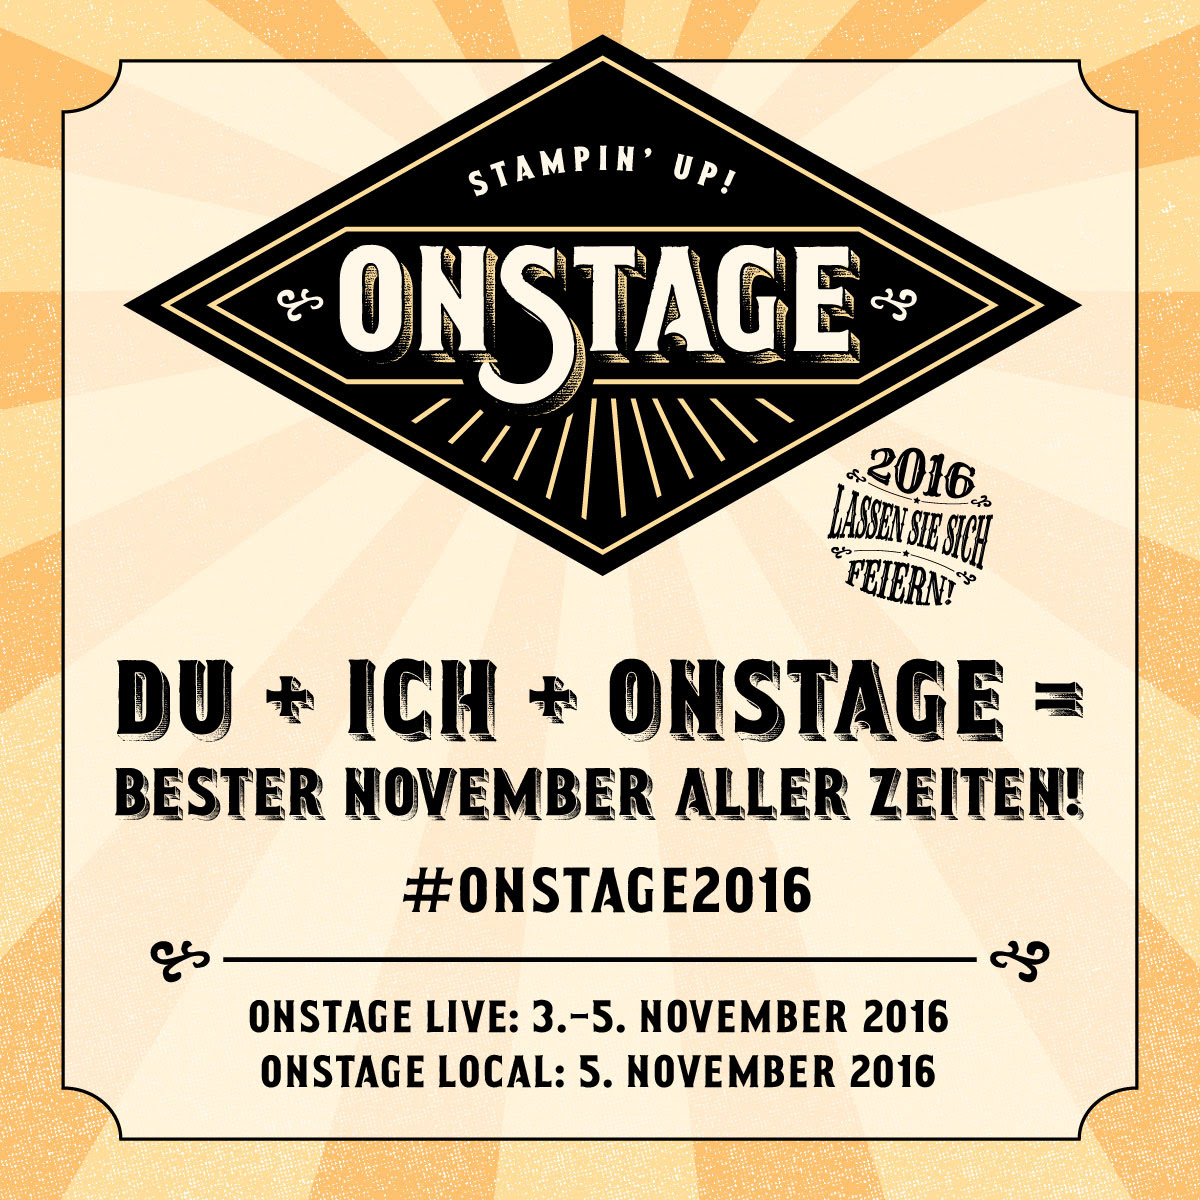 http://su-media.s3.amazonaws.com/media/events/OnStage2016_November/August%20Refresh/sharable_OnStage2016_Aug1116_DE.jpg